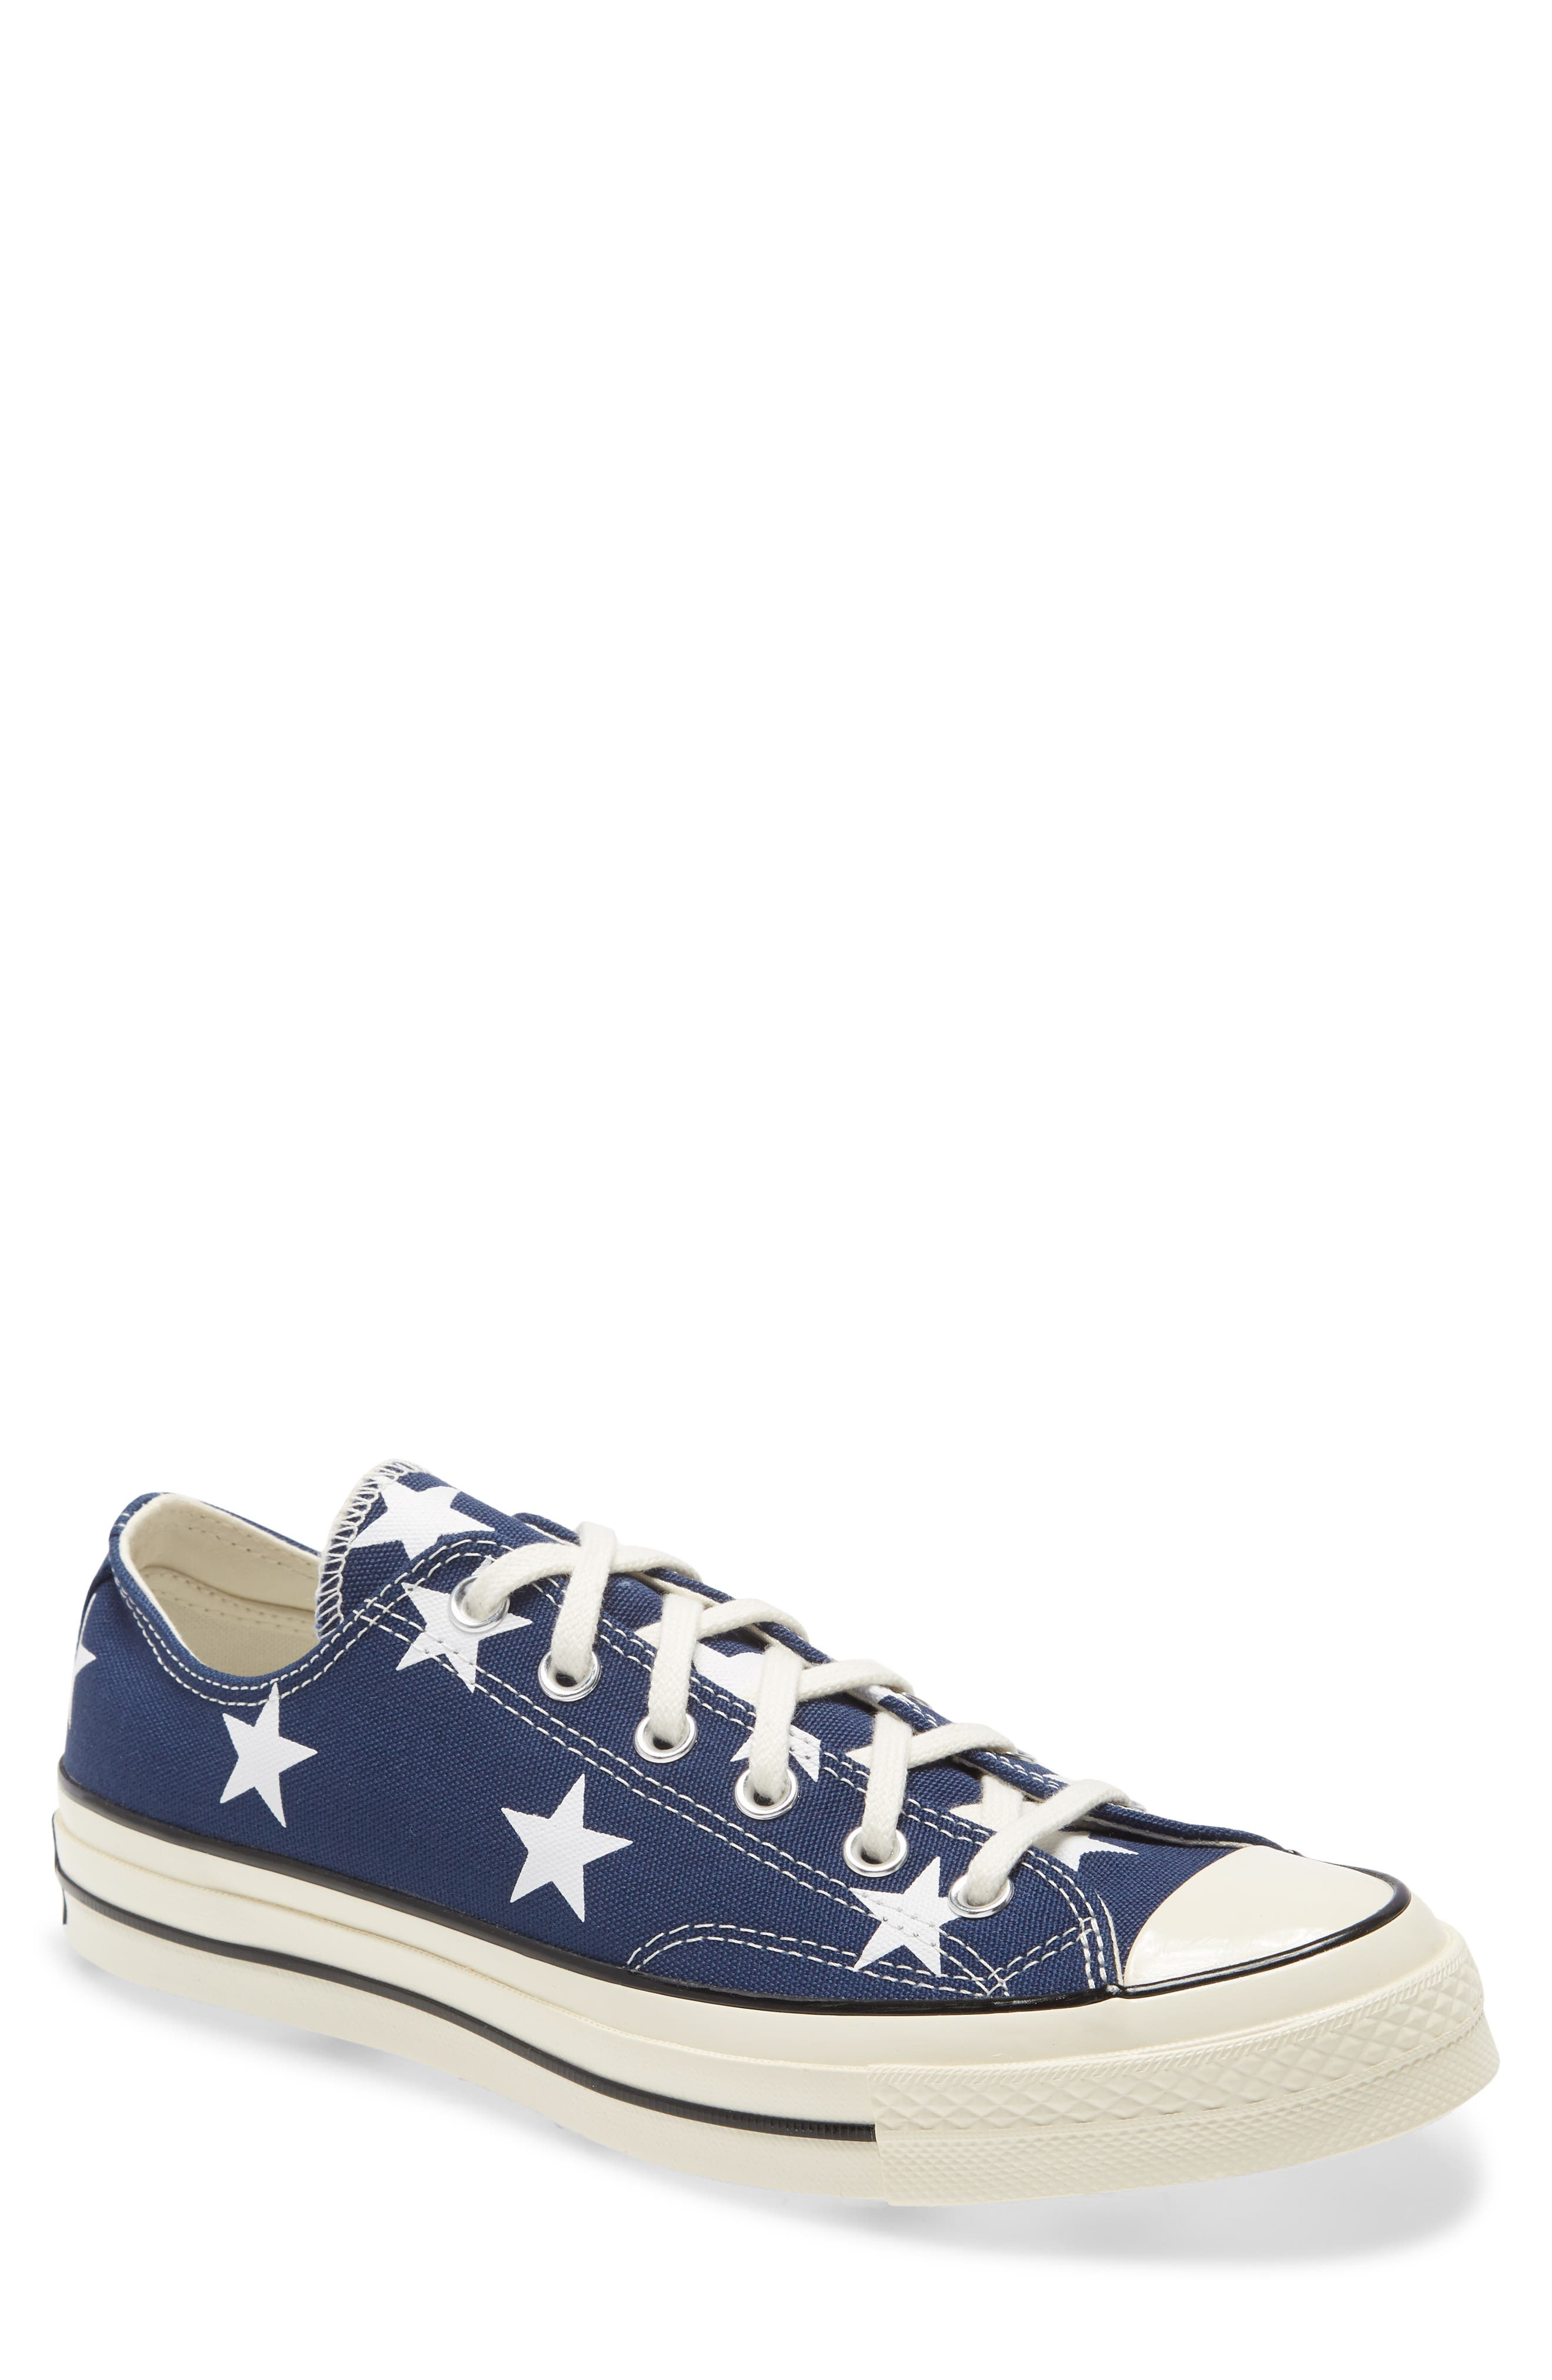 Image of Converse Chuck 70 Star Ox Low Sneaker